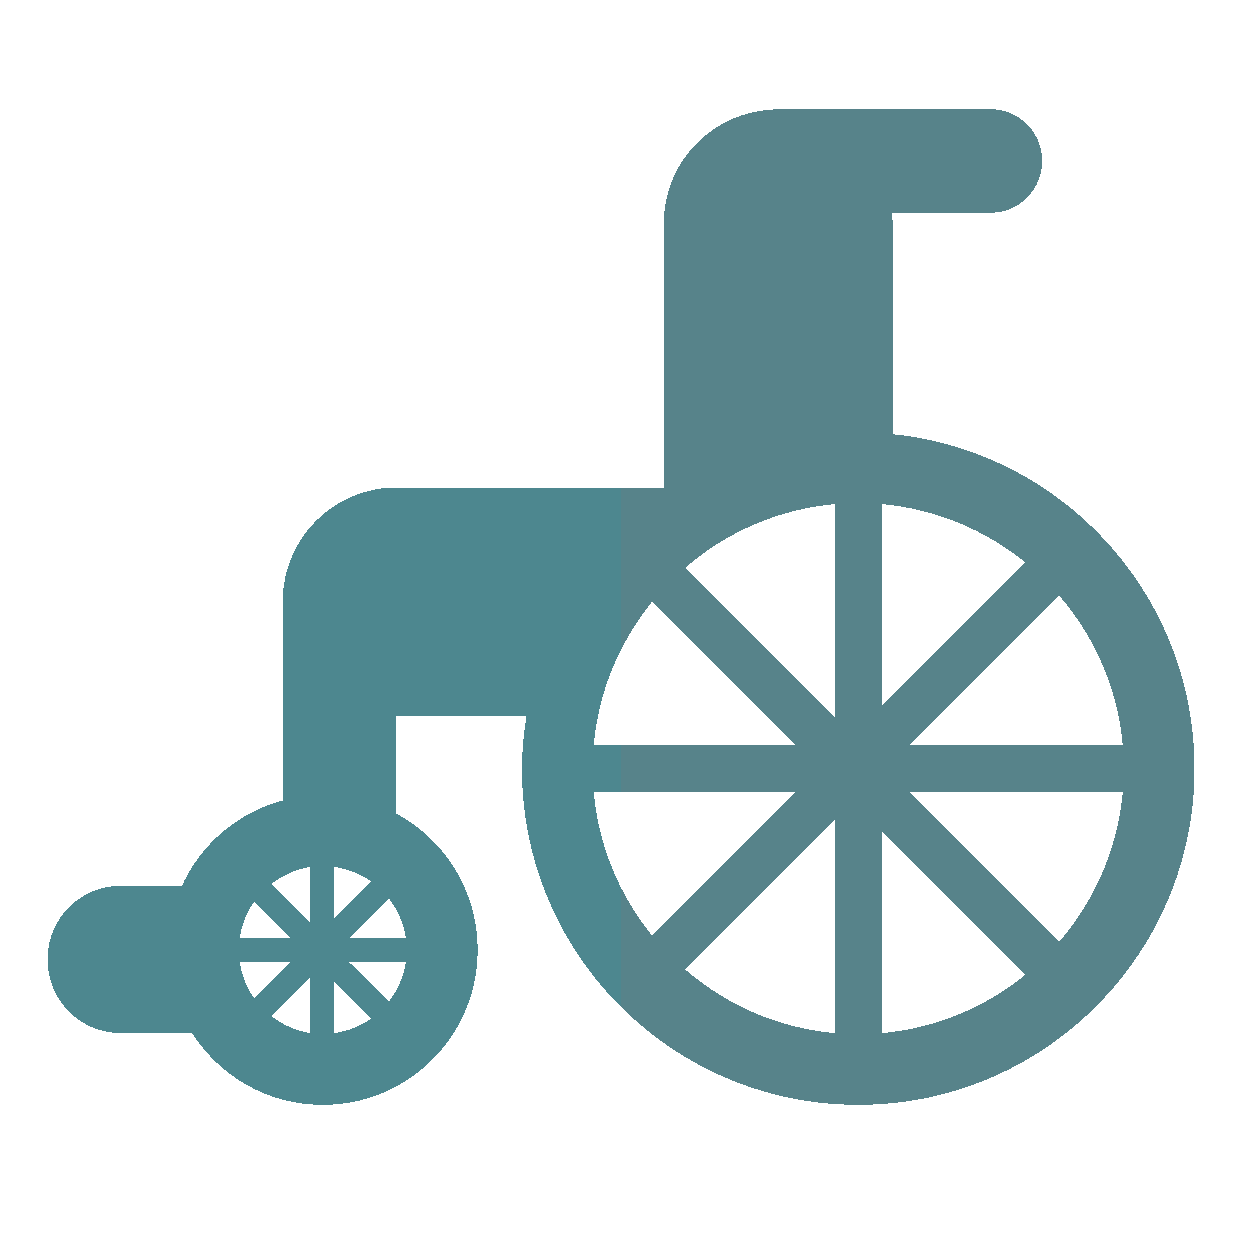 Canes rollators walkers wheelchairs. Wheel clipart wheelchair